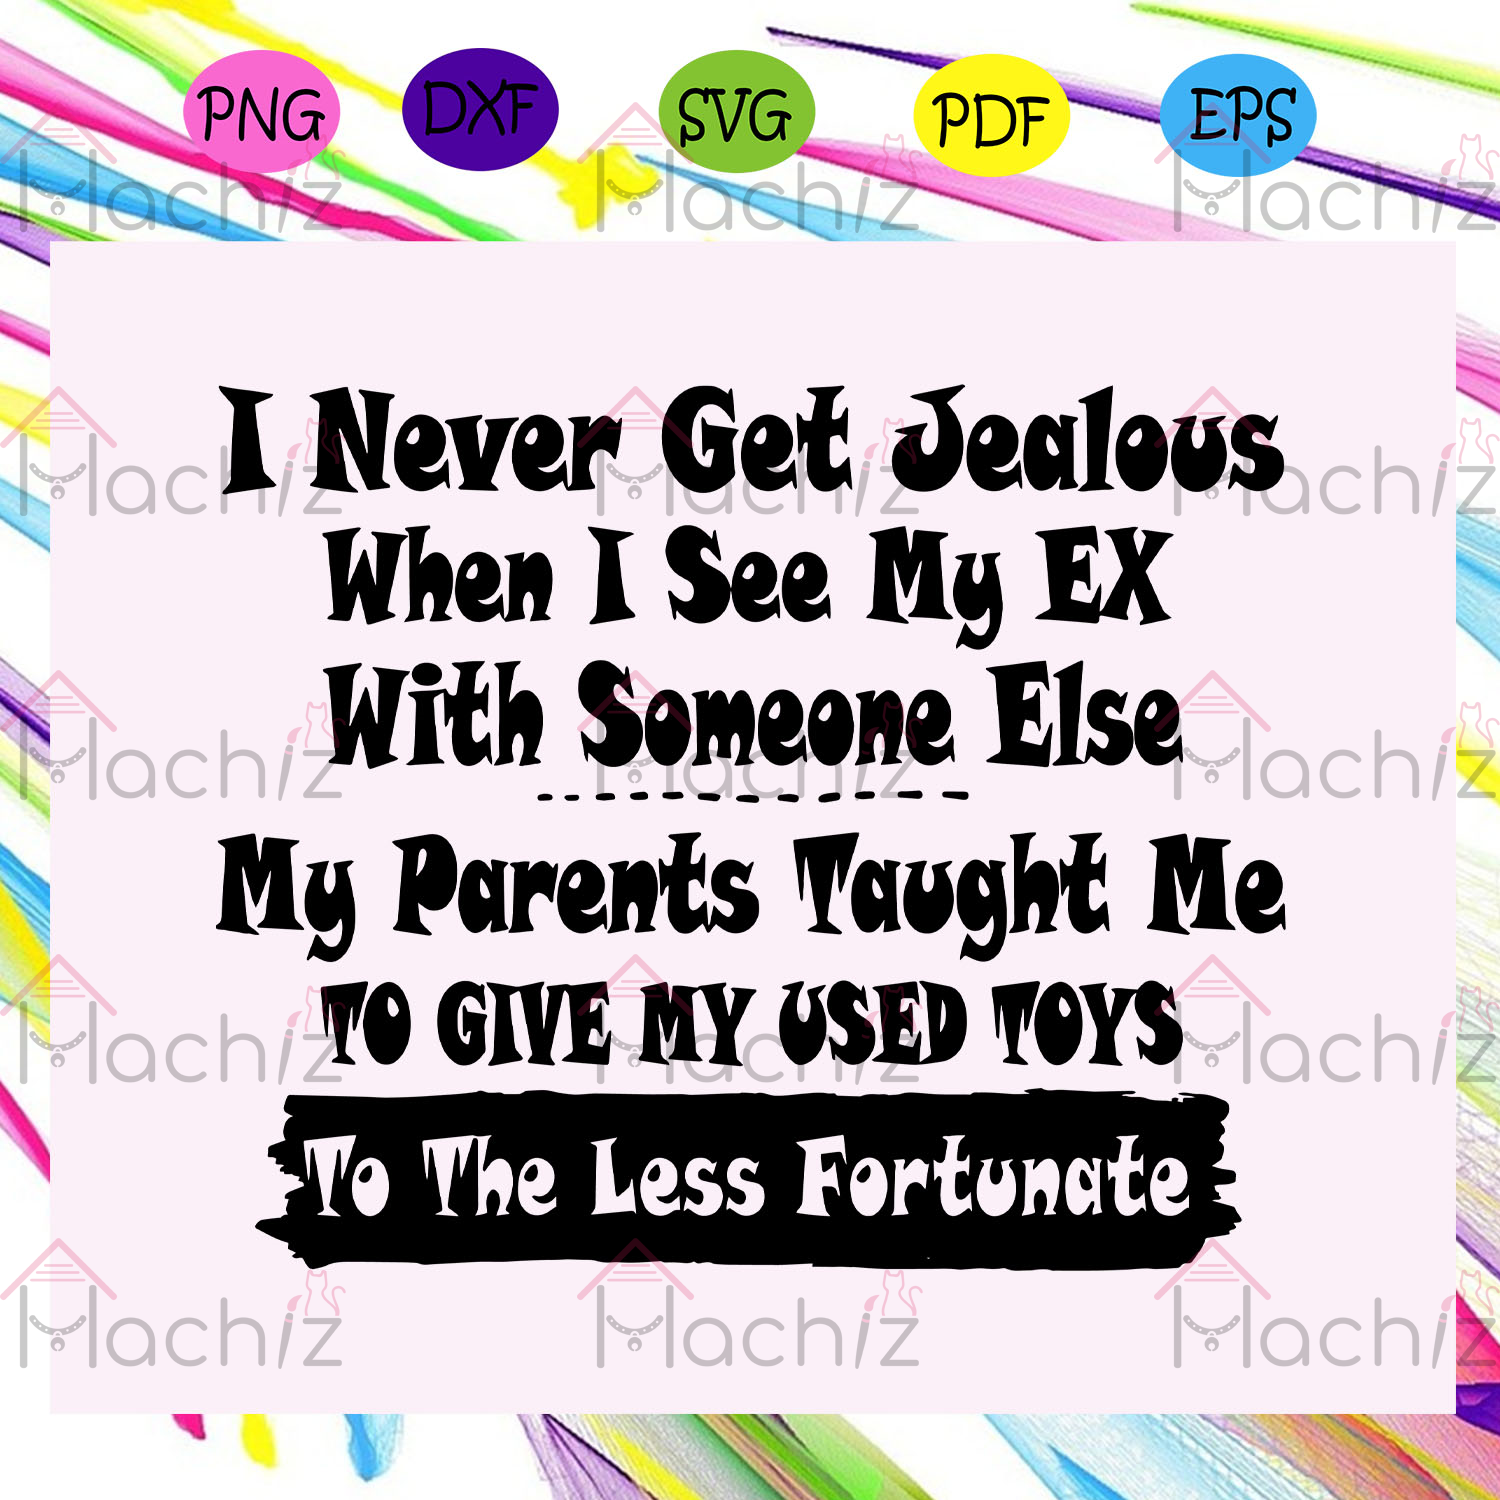 I never get jealous when I see my Ex with someone else svg, my parents taught me to give my used toys svg, to the less fortunate svg, fathers day svg, fathers day gift, Files For Silhouette, Files For Cricut, SVG, DXF, EPS, PNG, Instant Download